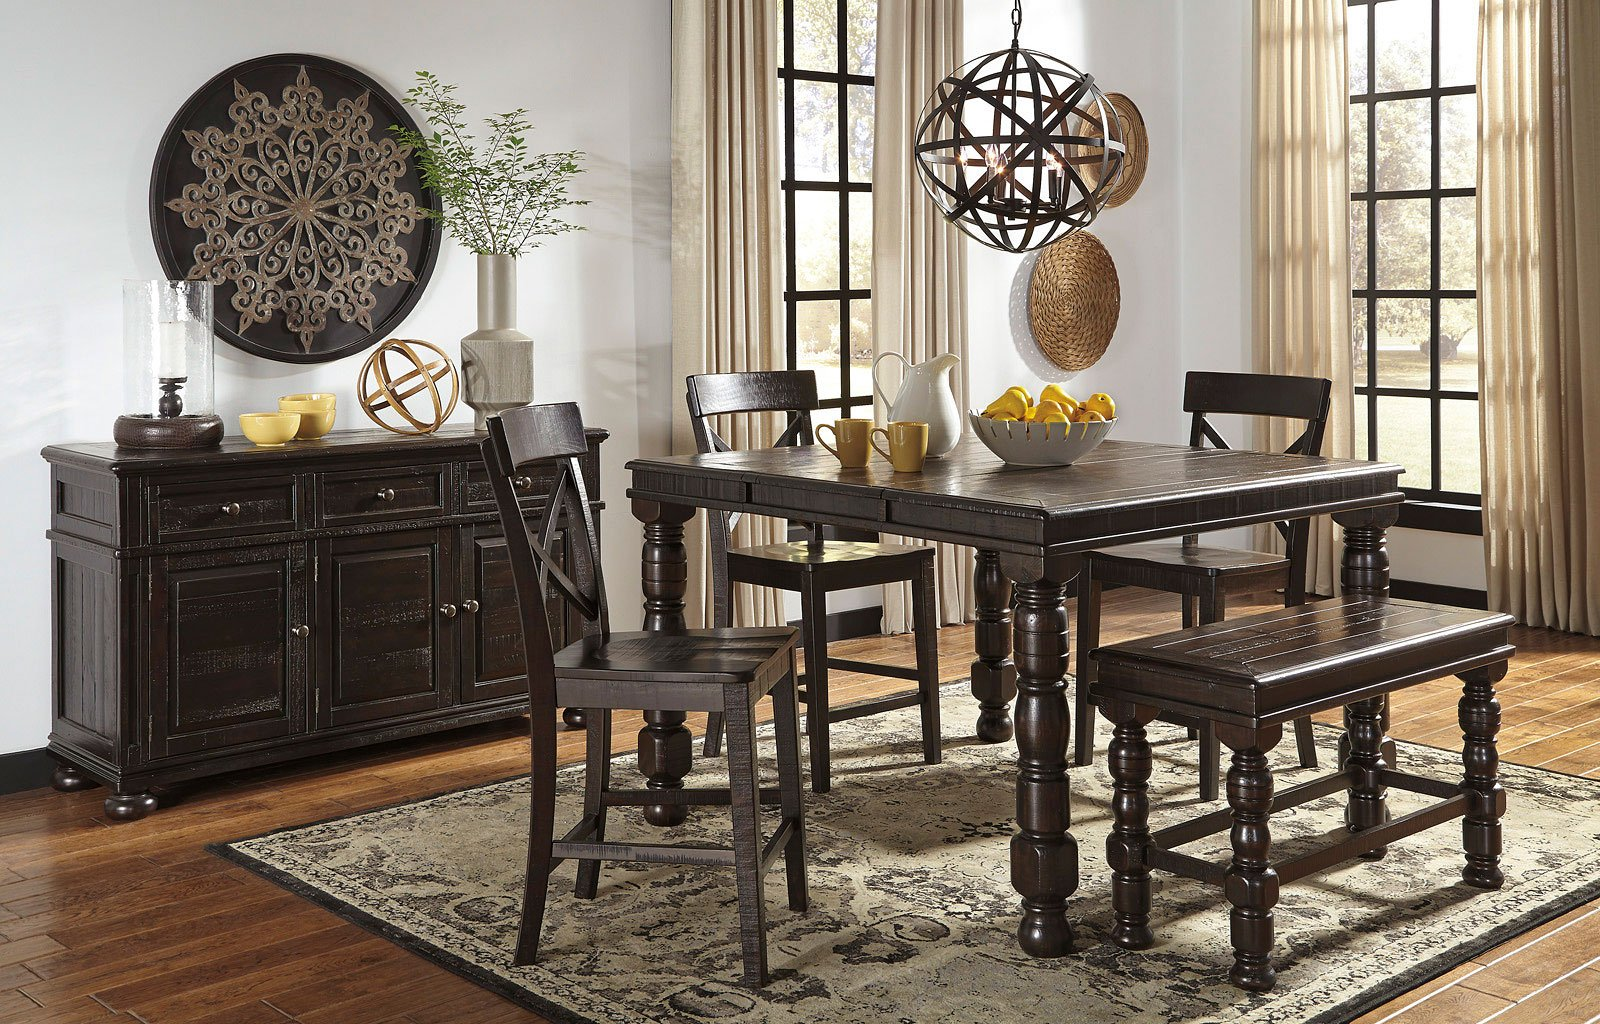 gerlane counter height dining set w bench by signature design by ashley 1 reviews furniturepick. Black Bedroom Furniture Sets. Home Design Ideas